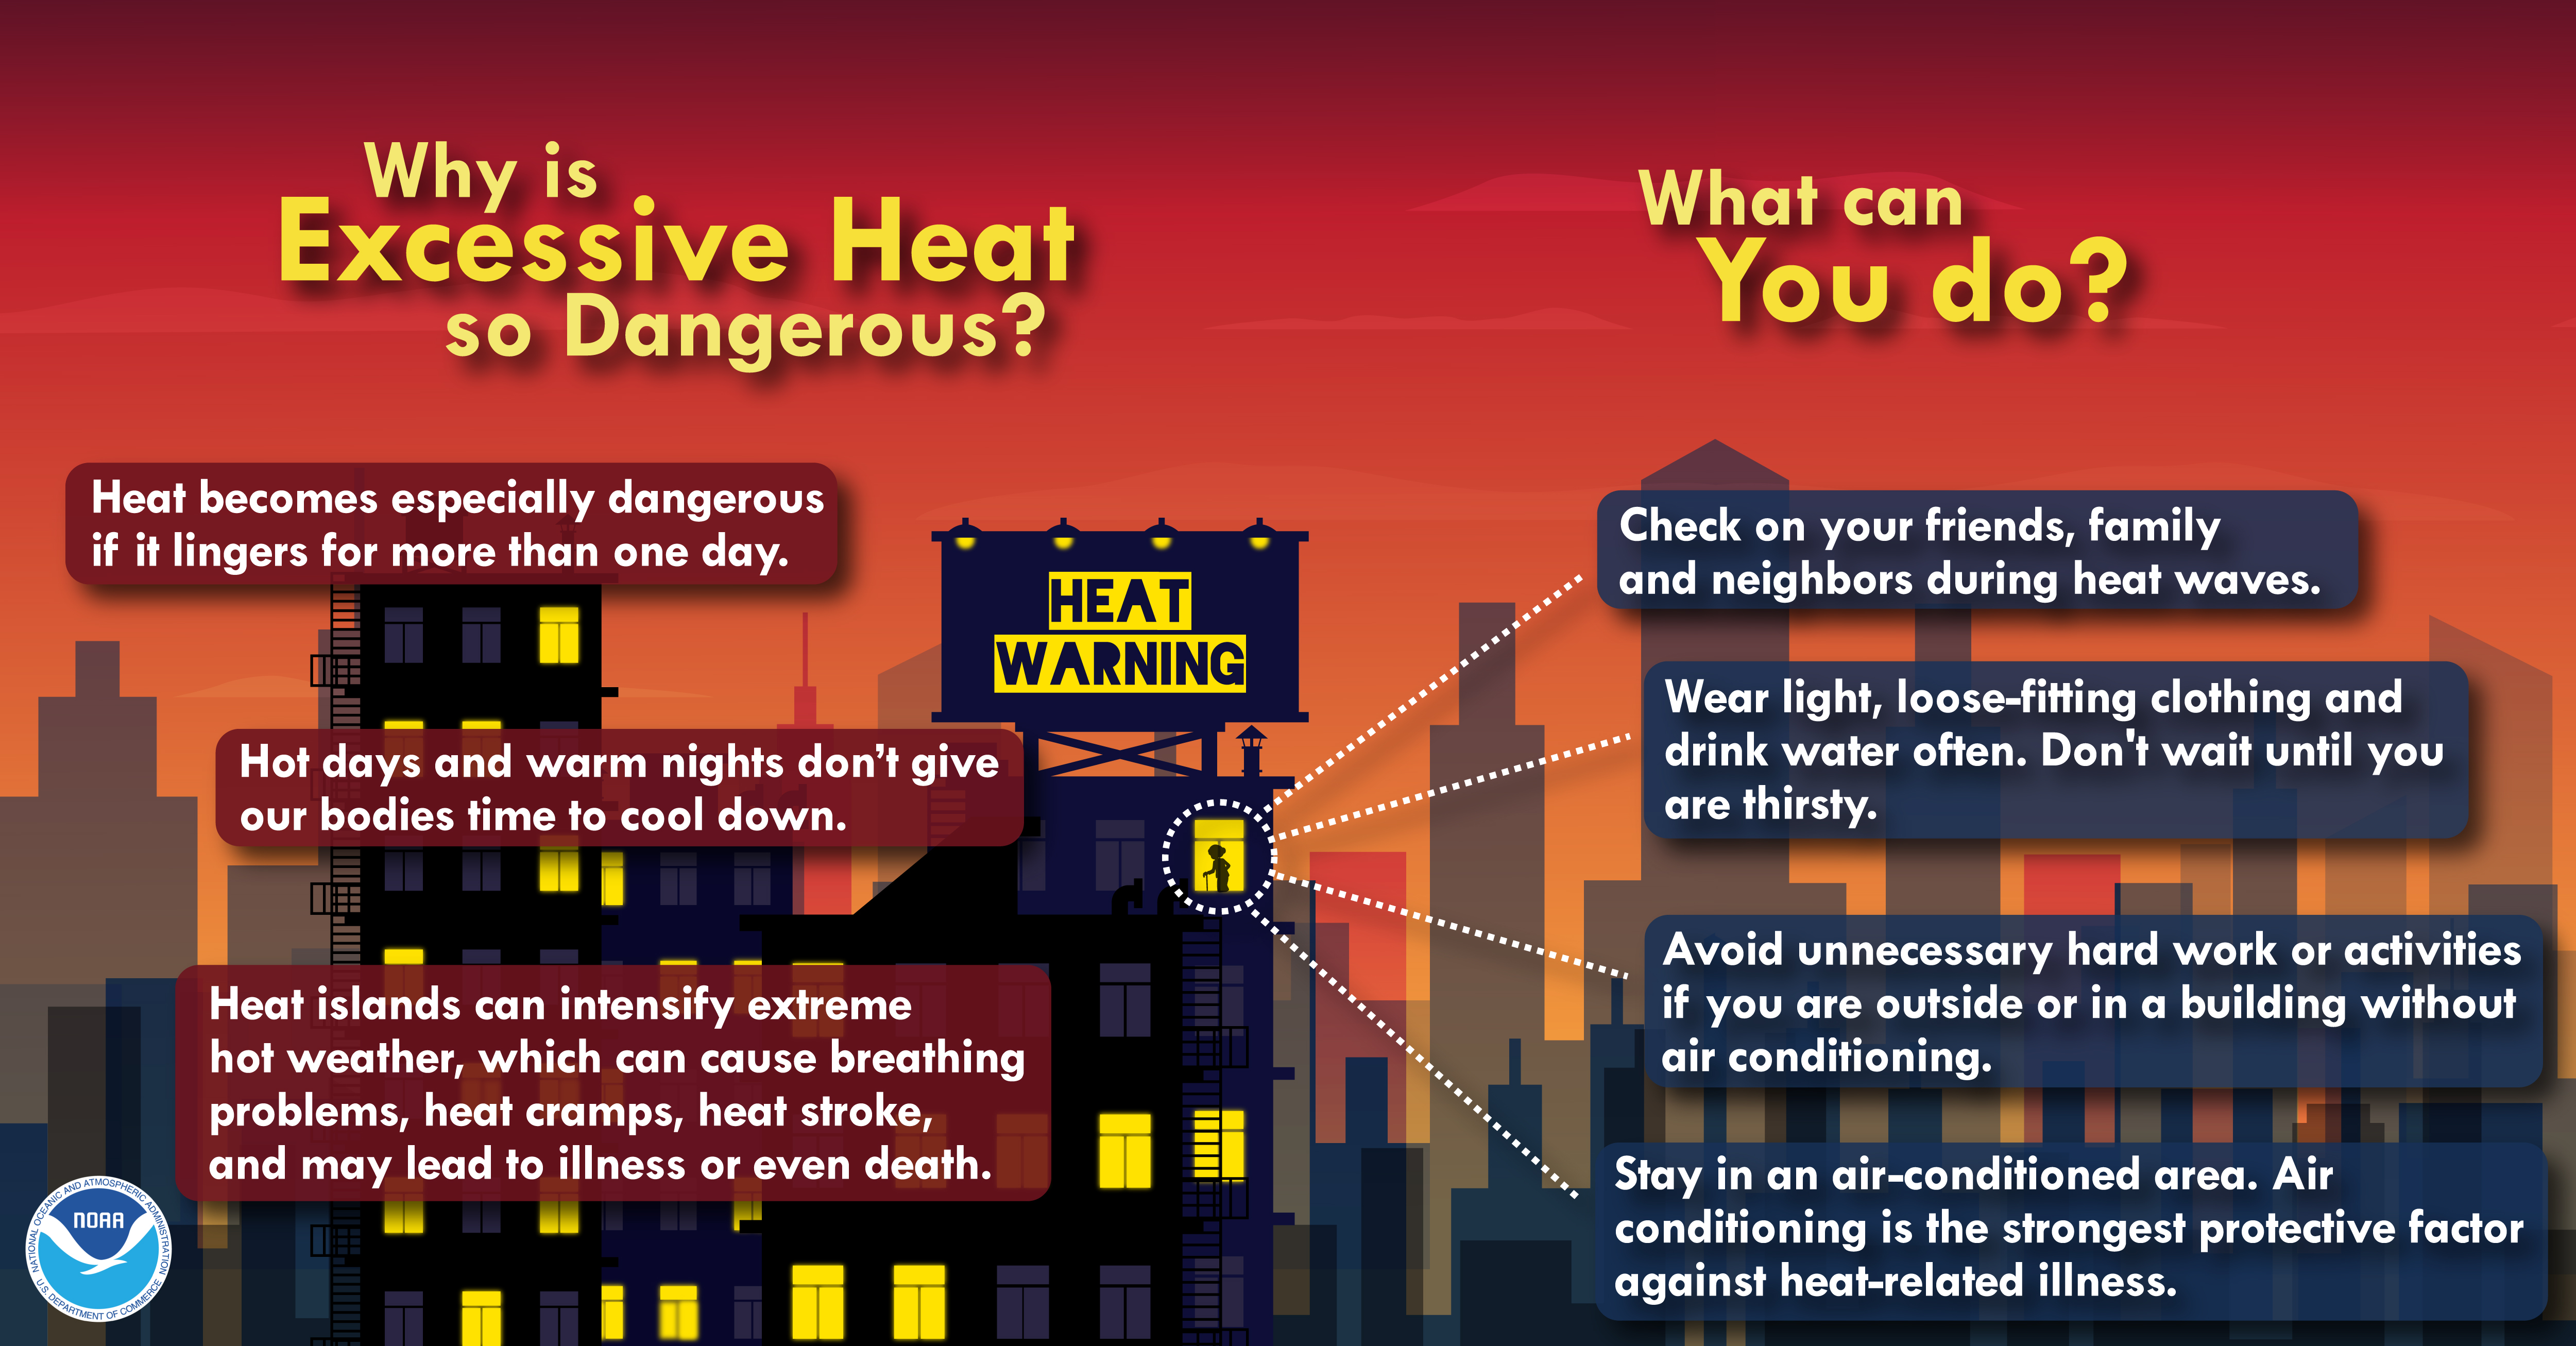 Why is excessive heat dangerous?